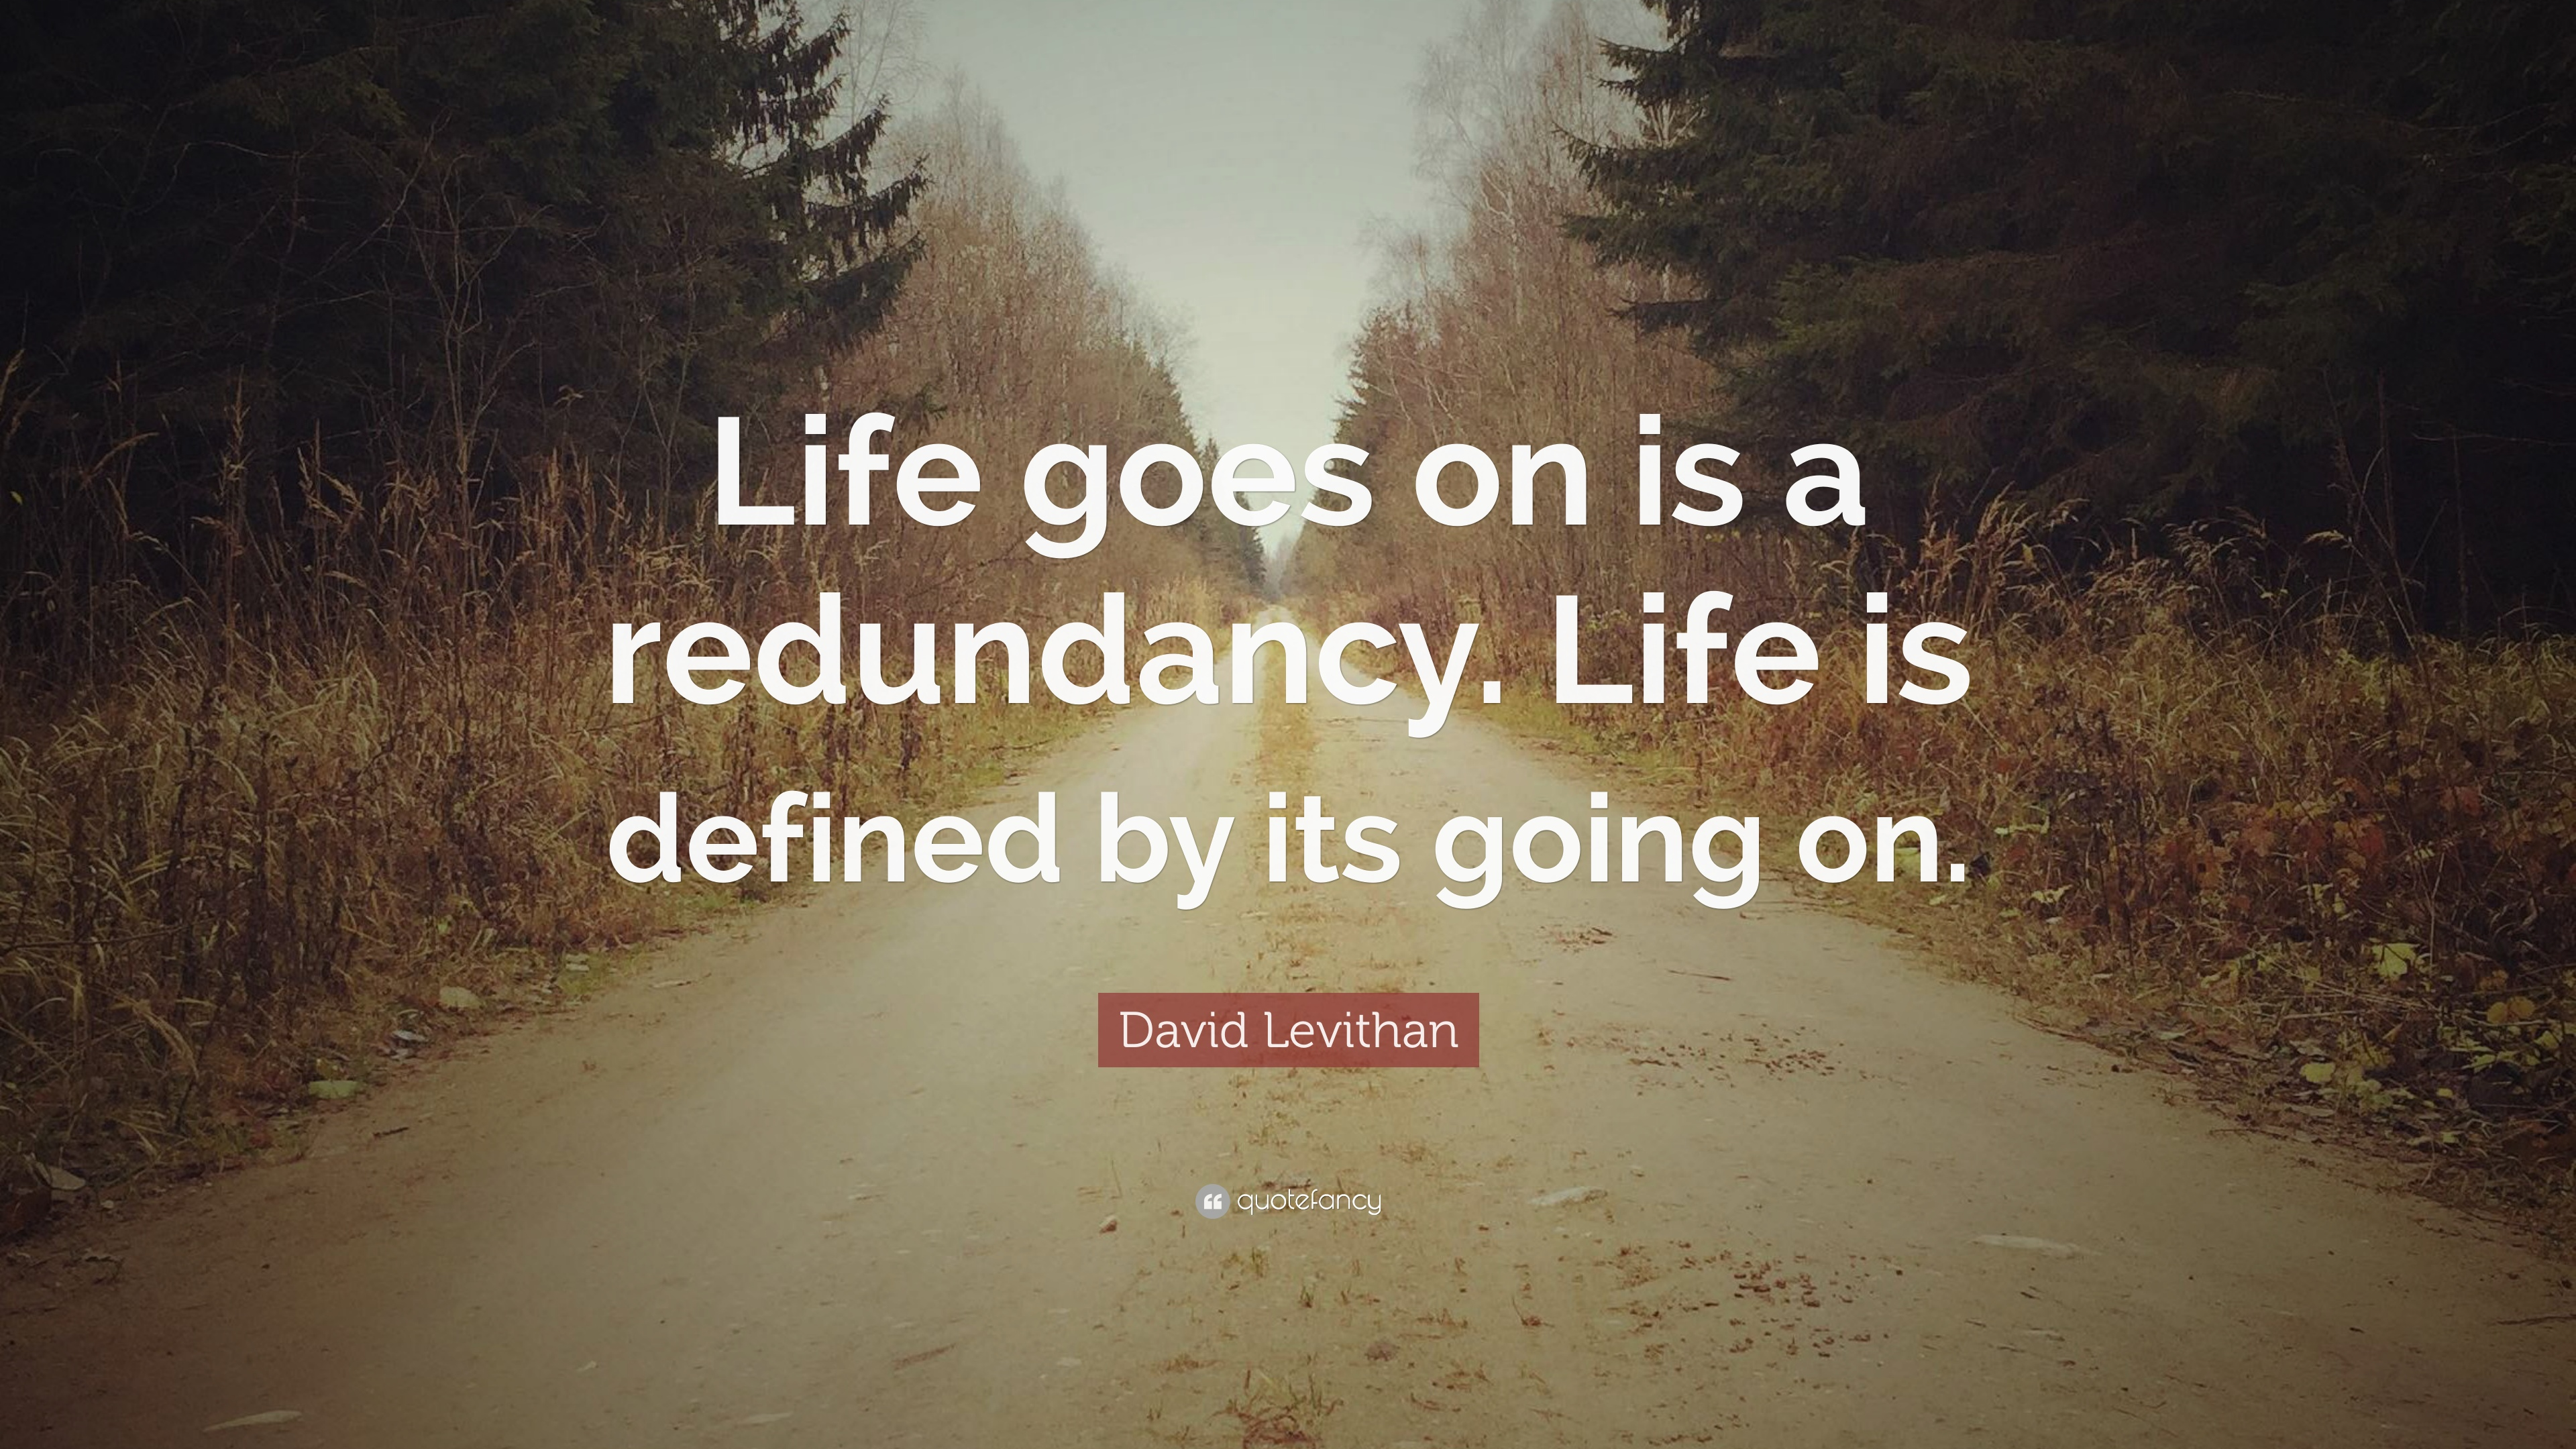 David Levithan Quote Life Goes On Is A Redundancy Life Is Defined